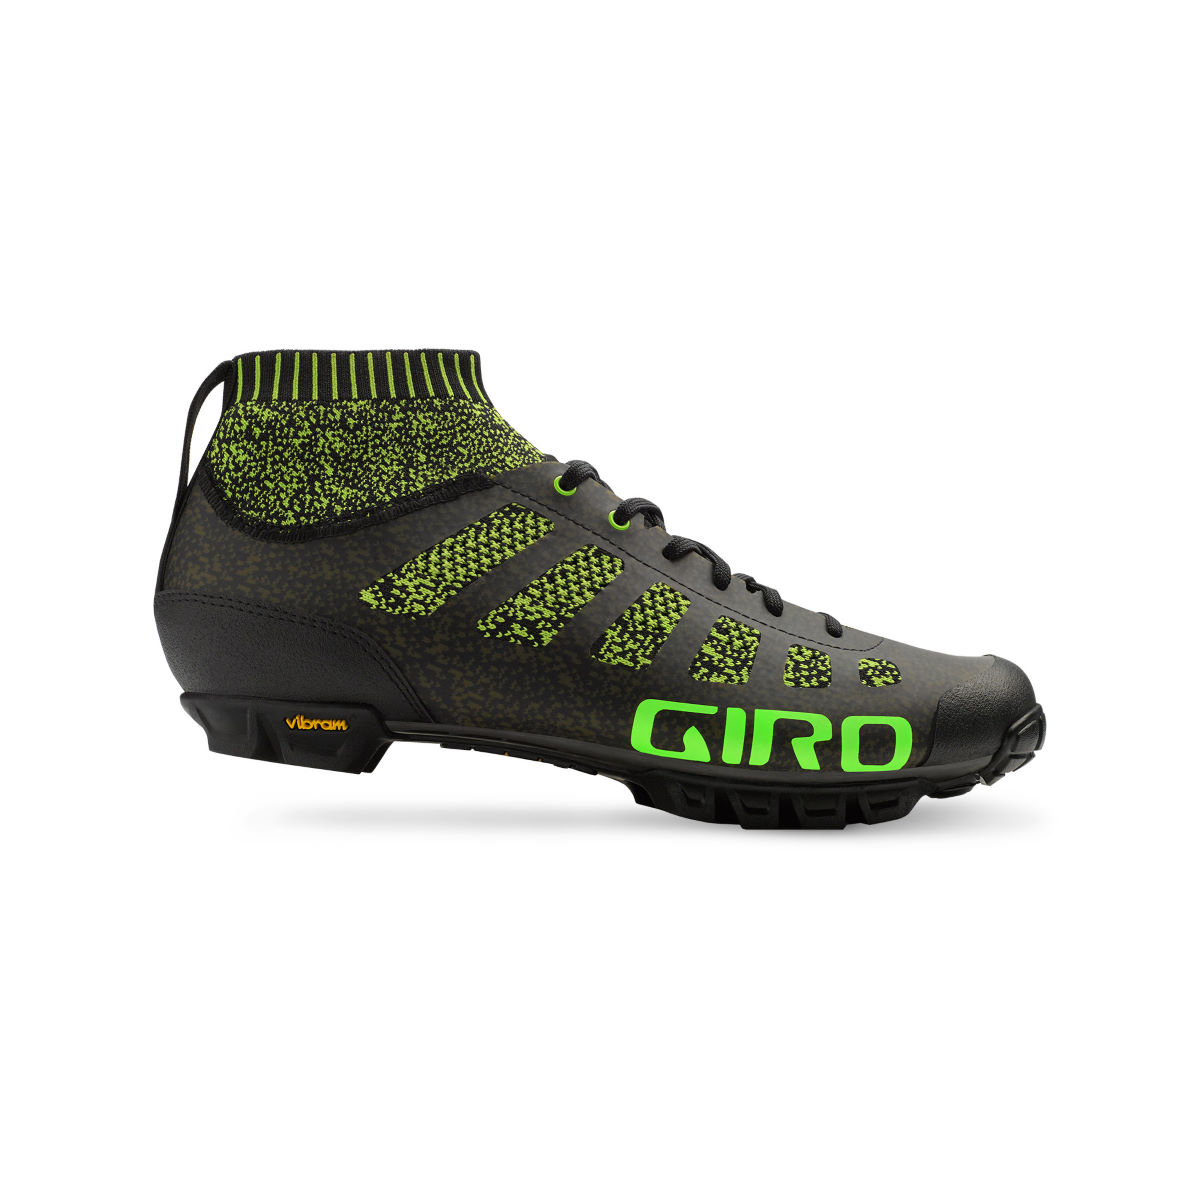 Chaussures VTT Giro Empire VR70 Knit - 43 Lime/Black